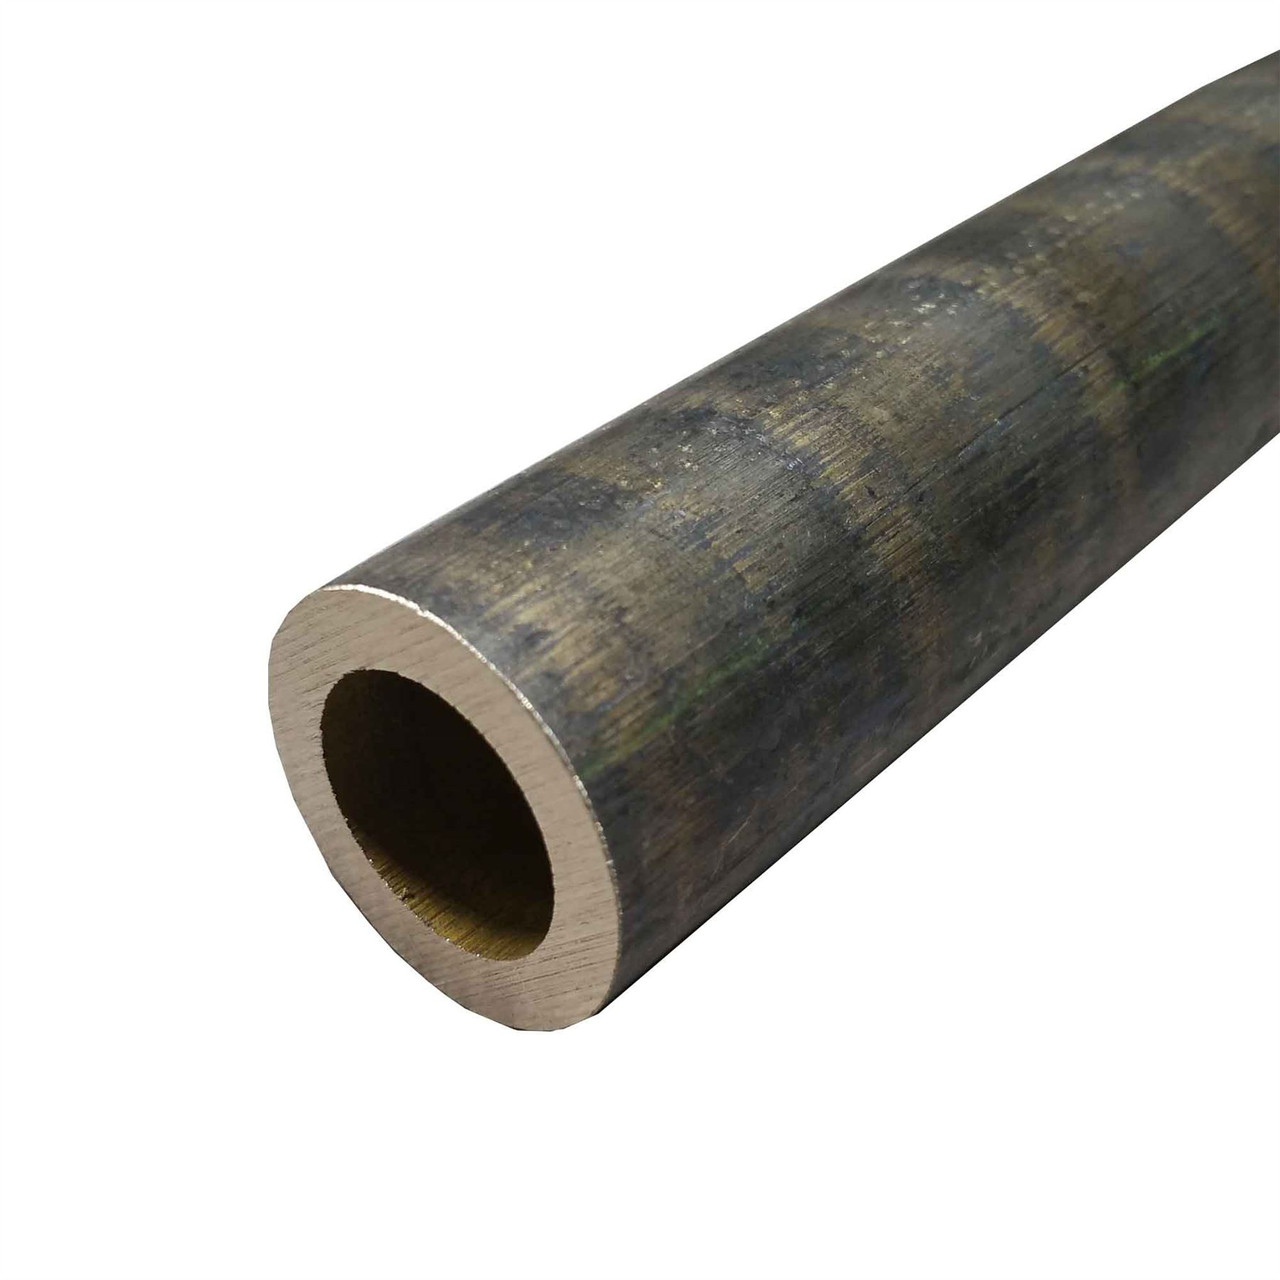 """C932 Bronze Hollow Round Bar, 2.75"""" ID, 4.5"""" OD, 12 inches long"""